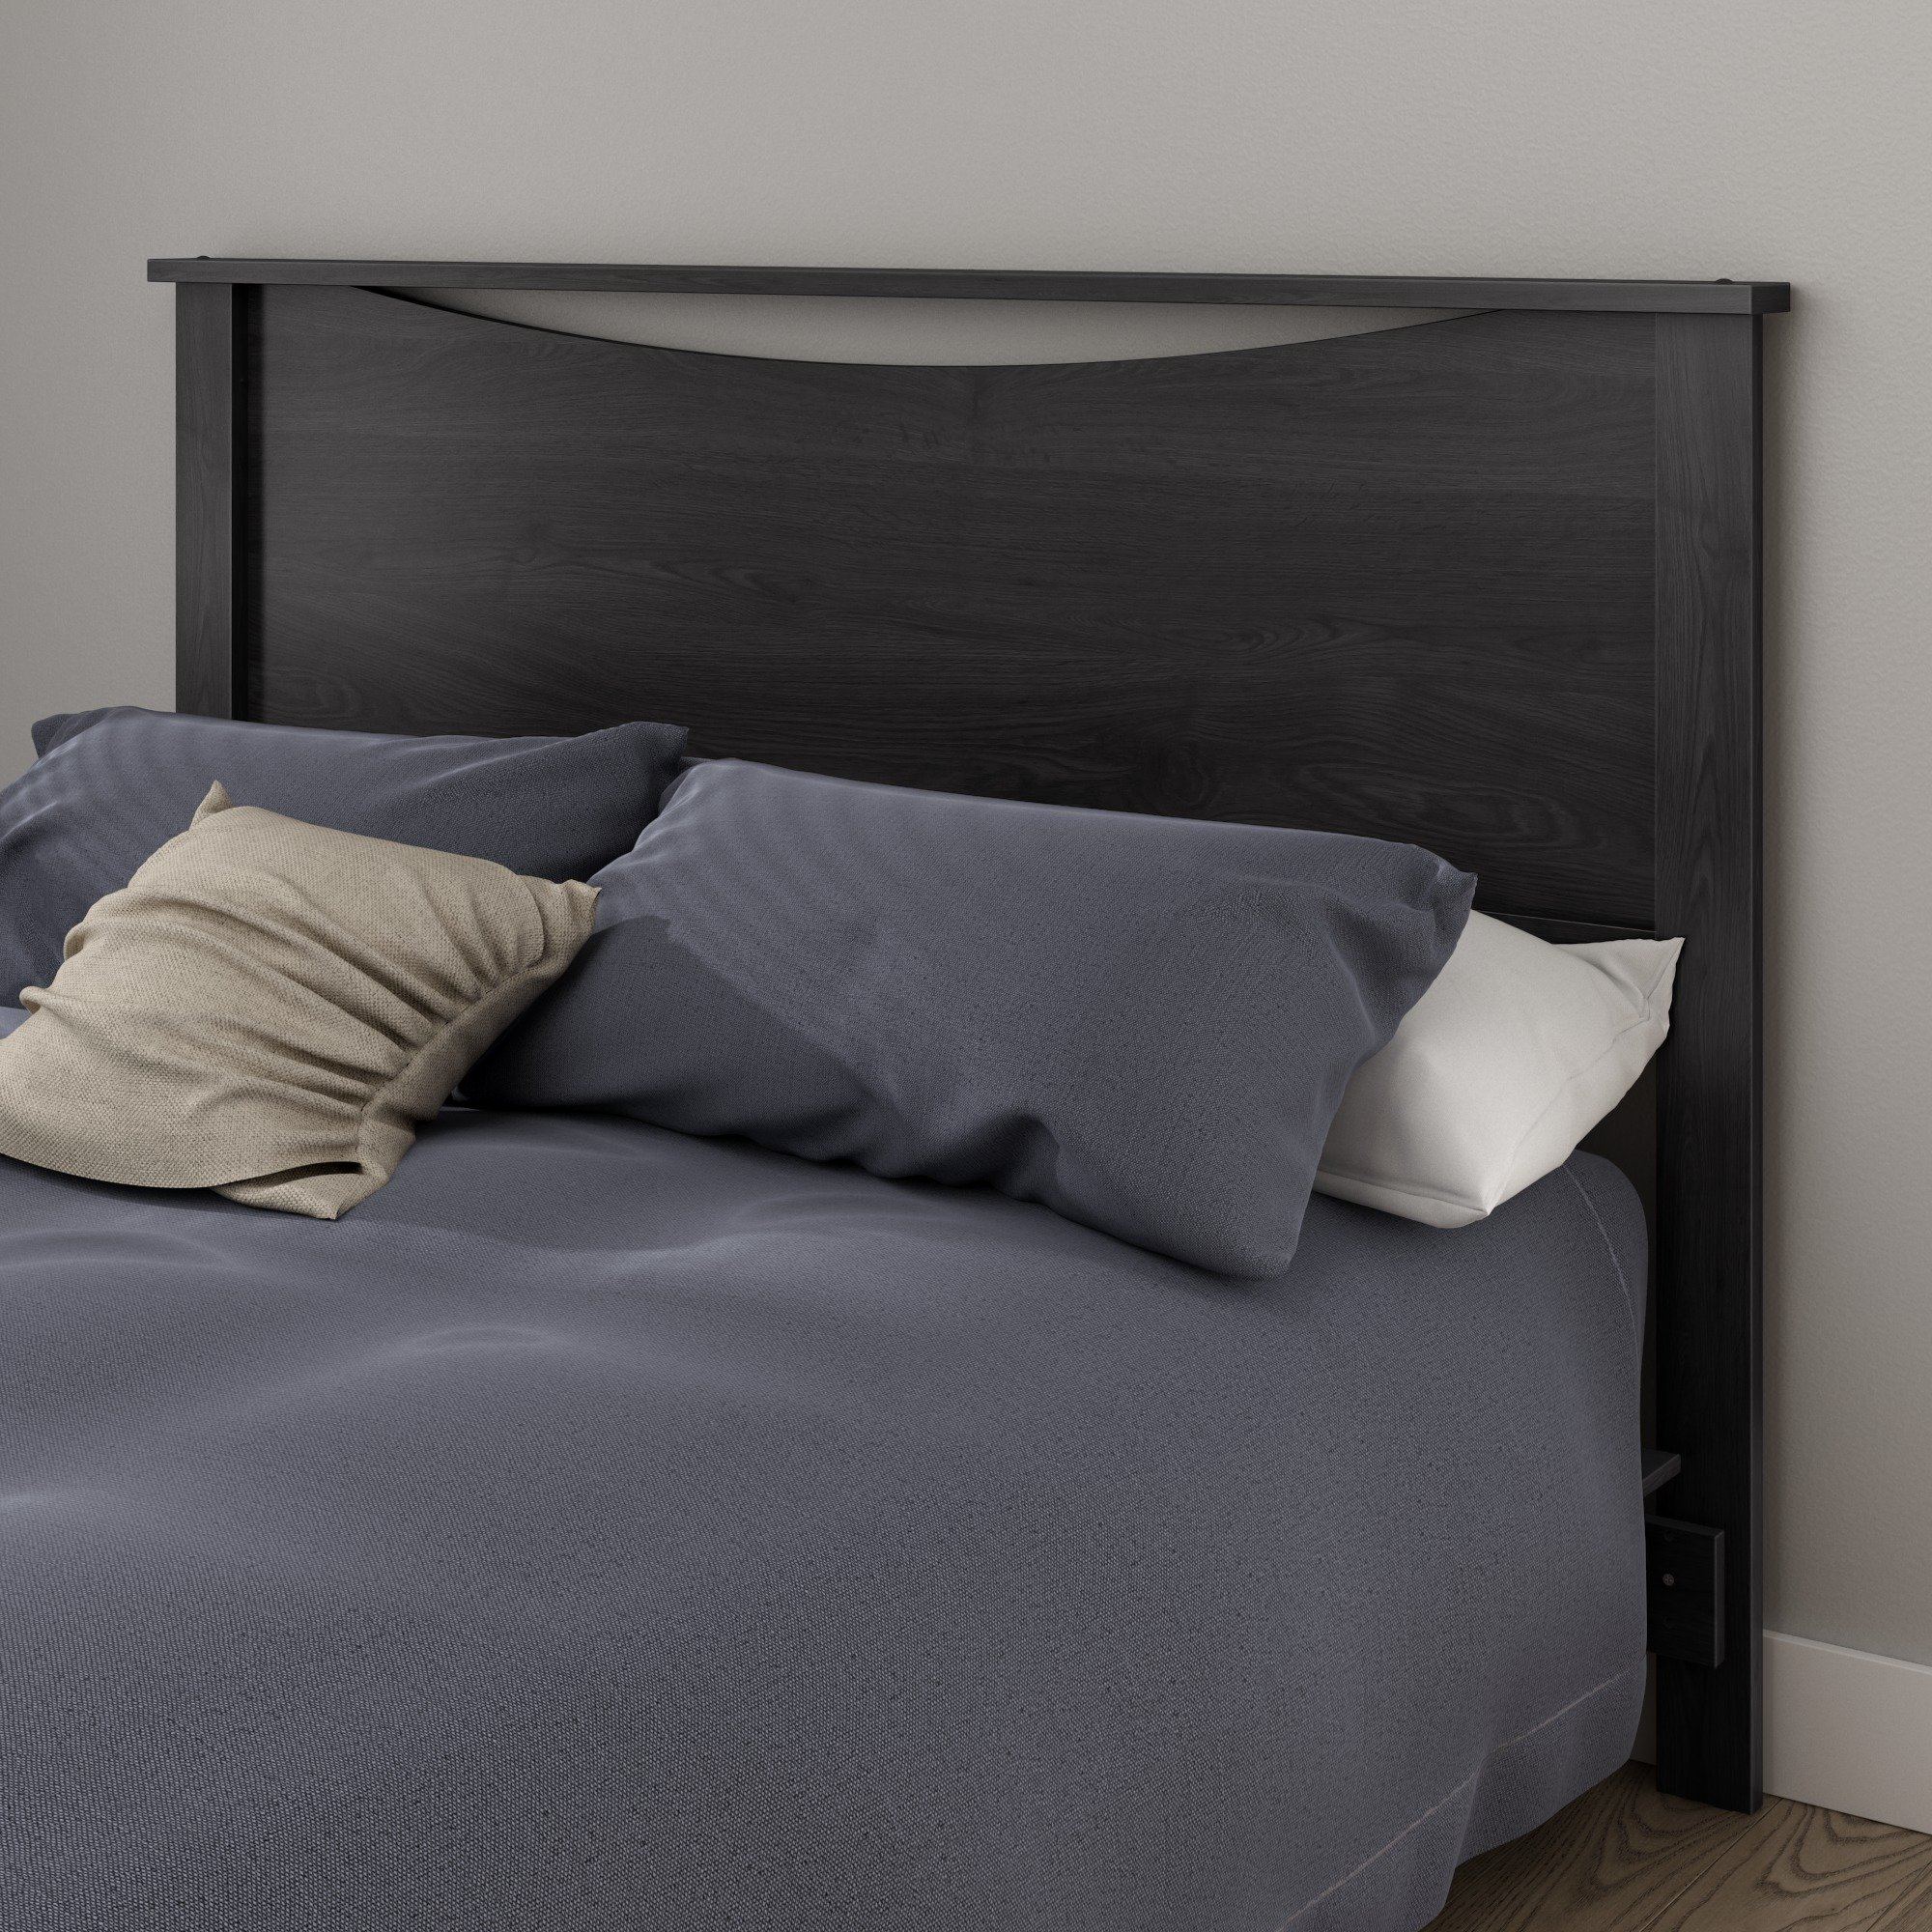 South Shore Step One Headboard, Full/Queen 54/60-Inch, Gray Oak by South Shore